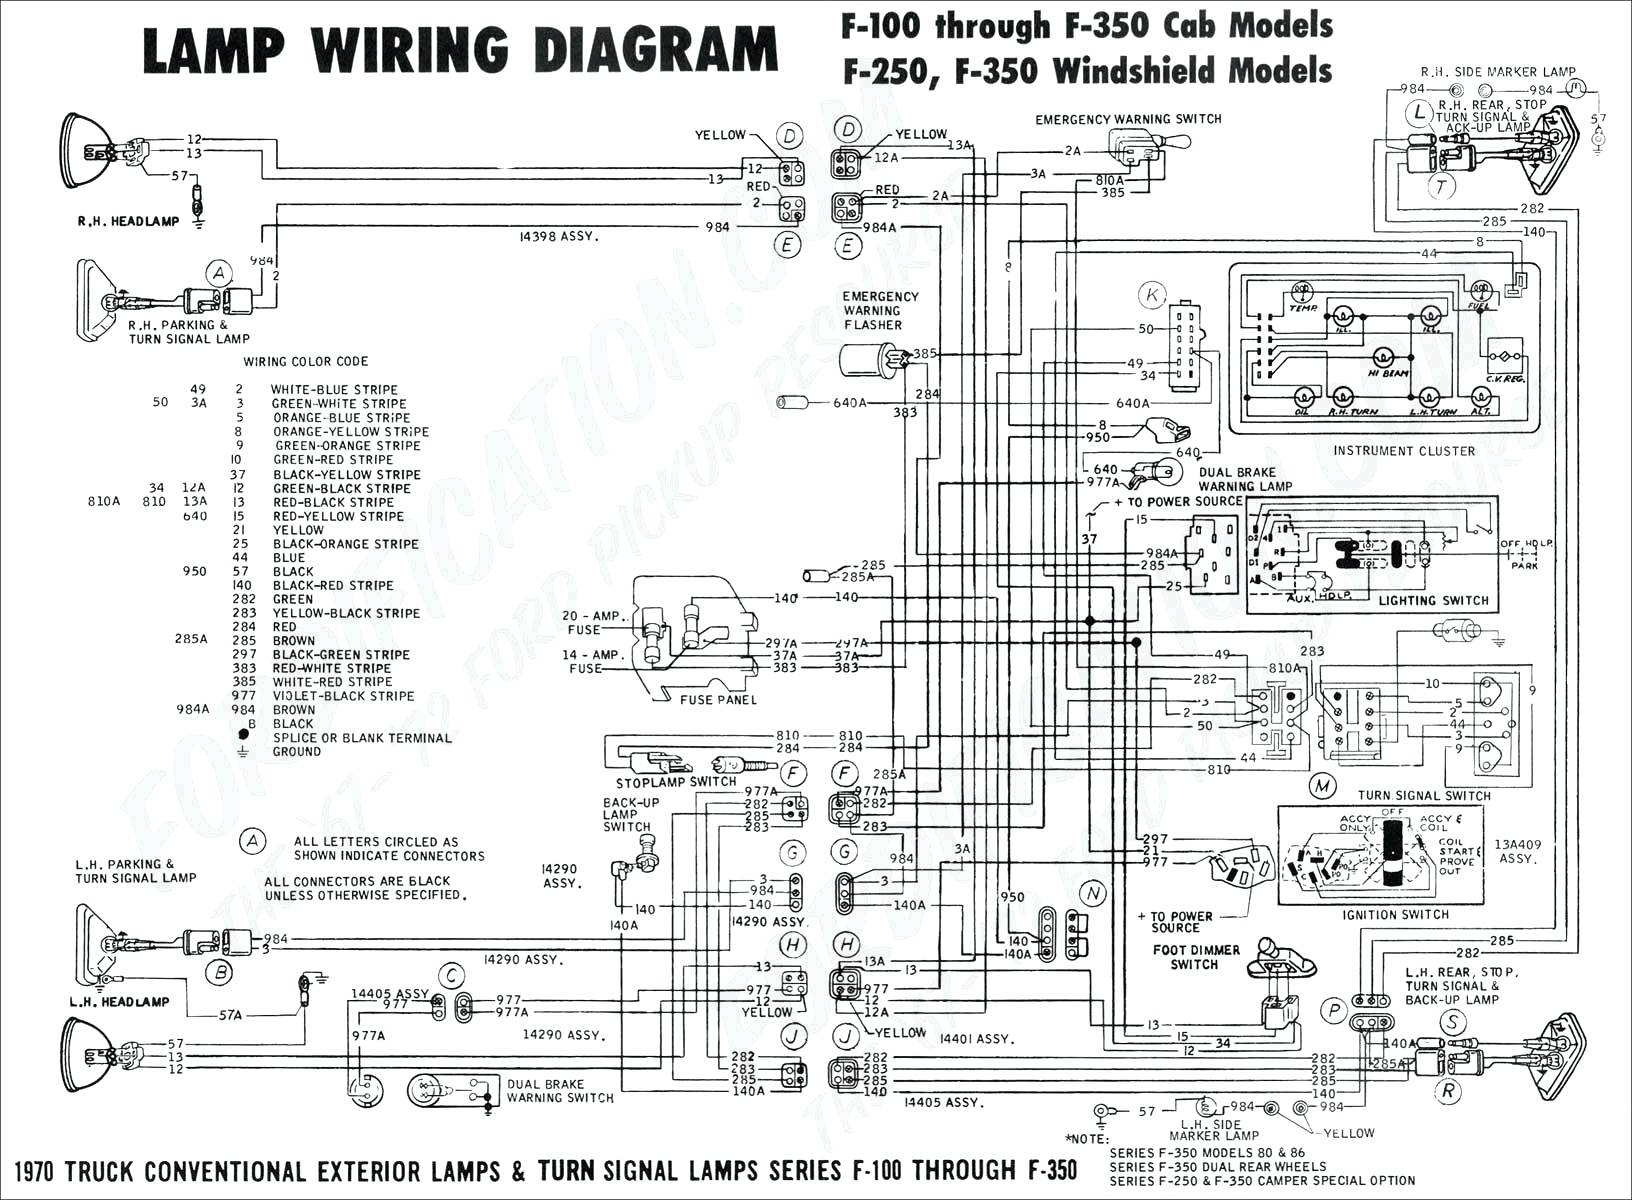 rcel actuator wiring diagram 288 schematic diagramrcel actuator wiring diagram 288 wiring diagram actuator controls diagram snugtop power actuator installation diagram wiring